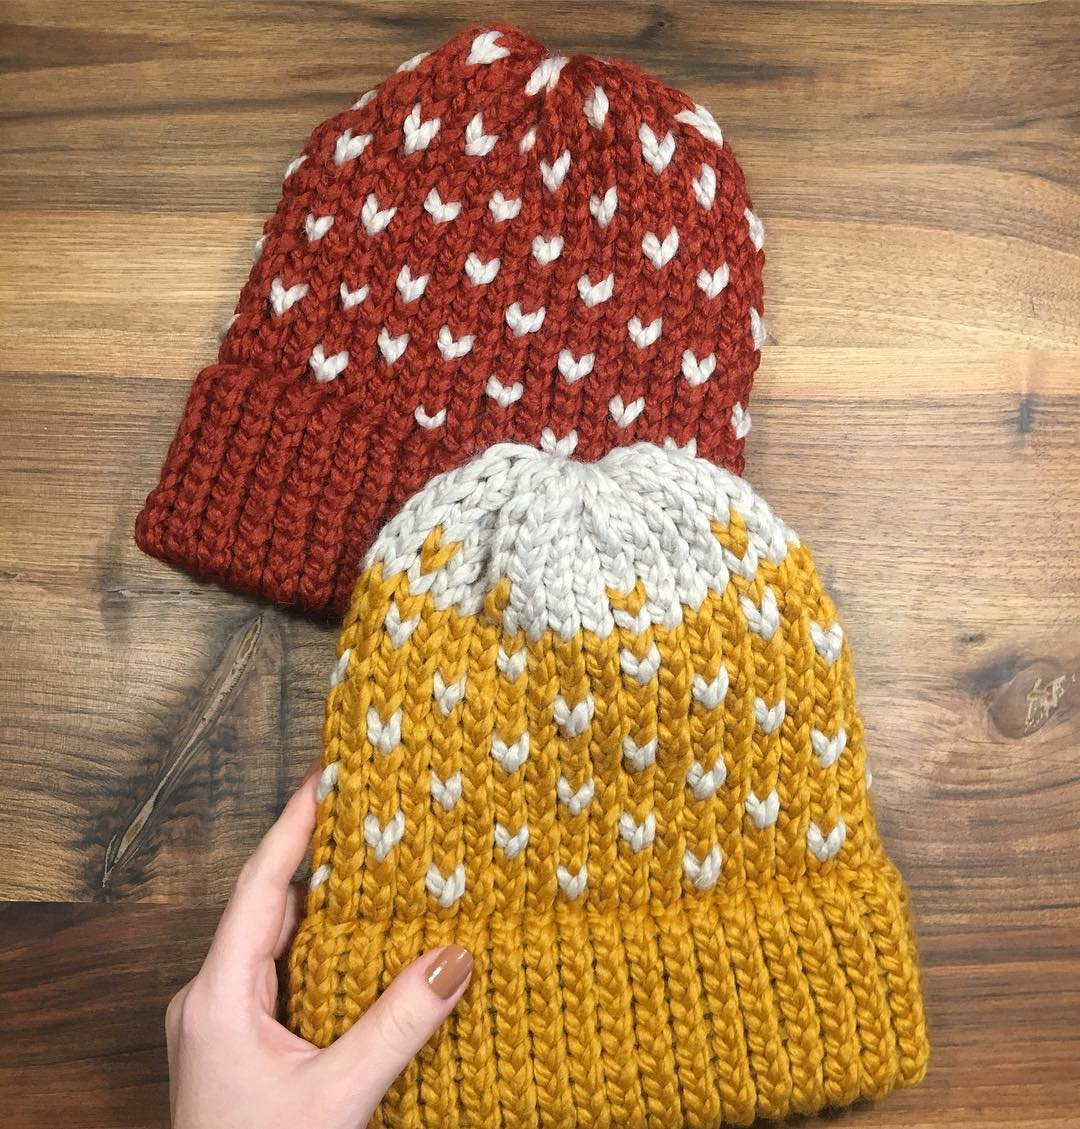 54ea845b5 65 Only the Best Knit Hat Patterns Images for 2019 - Page 46 of 54 ...